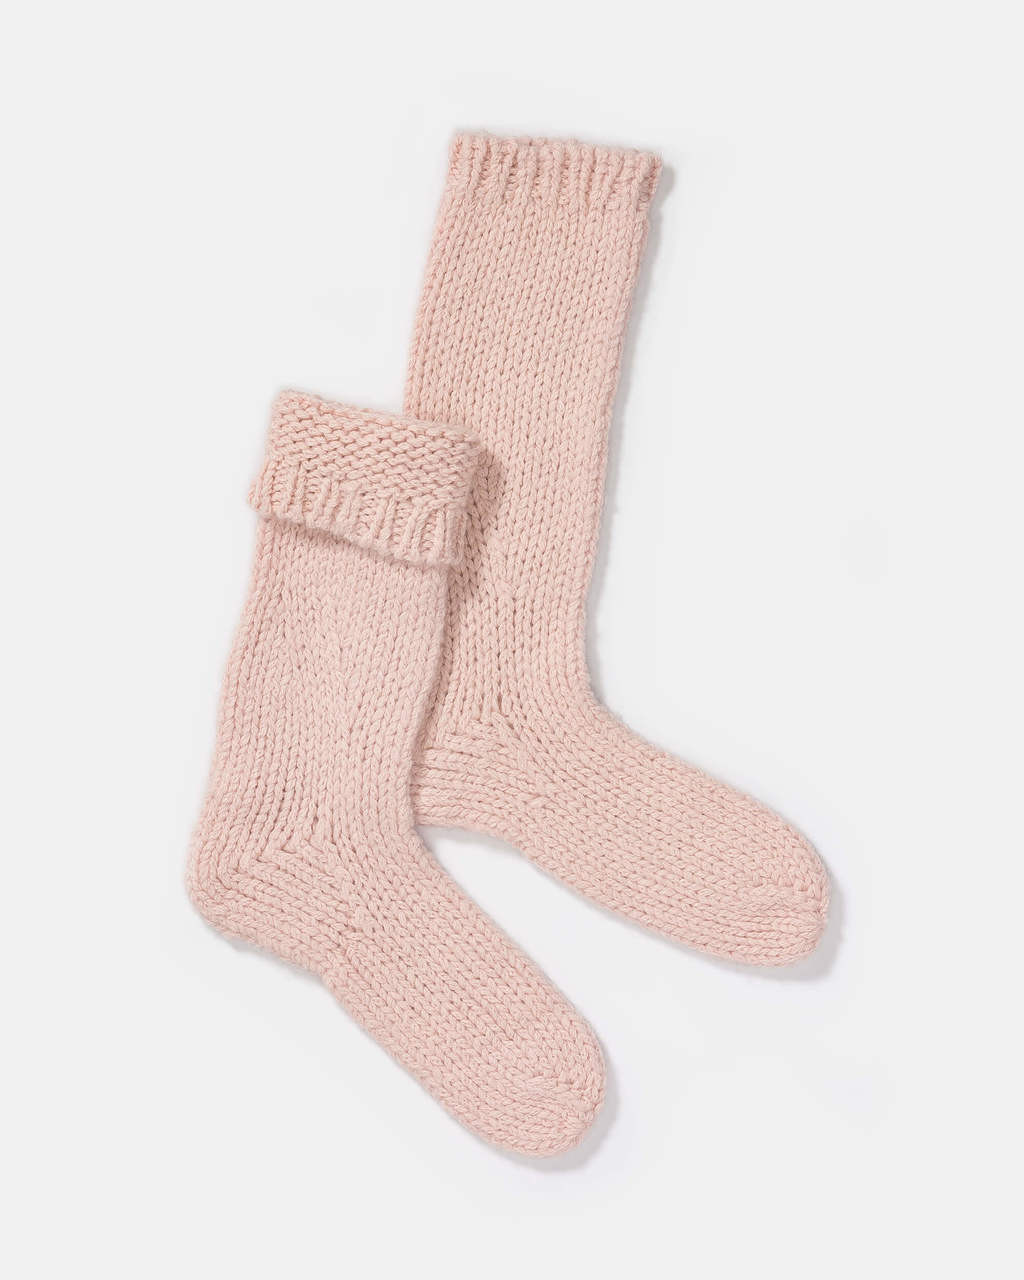 Alicia Adams Alpaca Lounge Sock, alpaca socks, womens alpaca socks, alpaca socks men, alpaca wool socks, pink powder alpaca socks